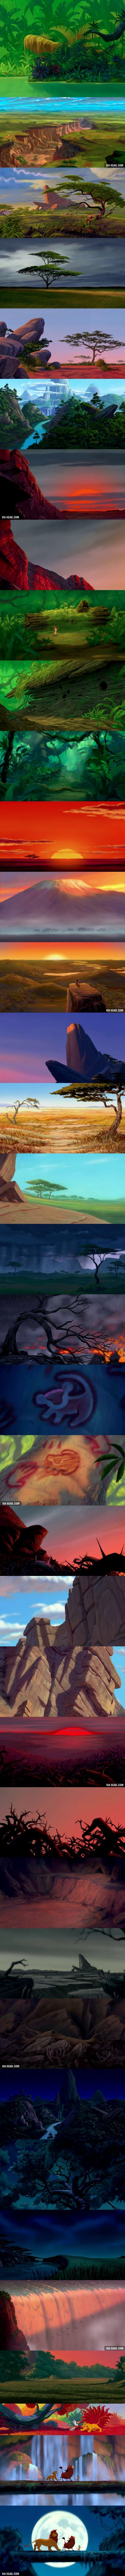 Background Art of The Lion King